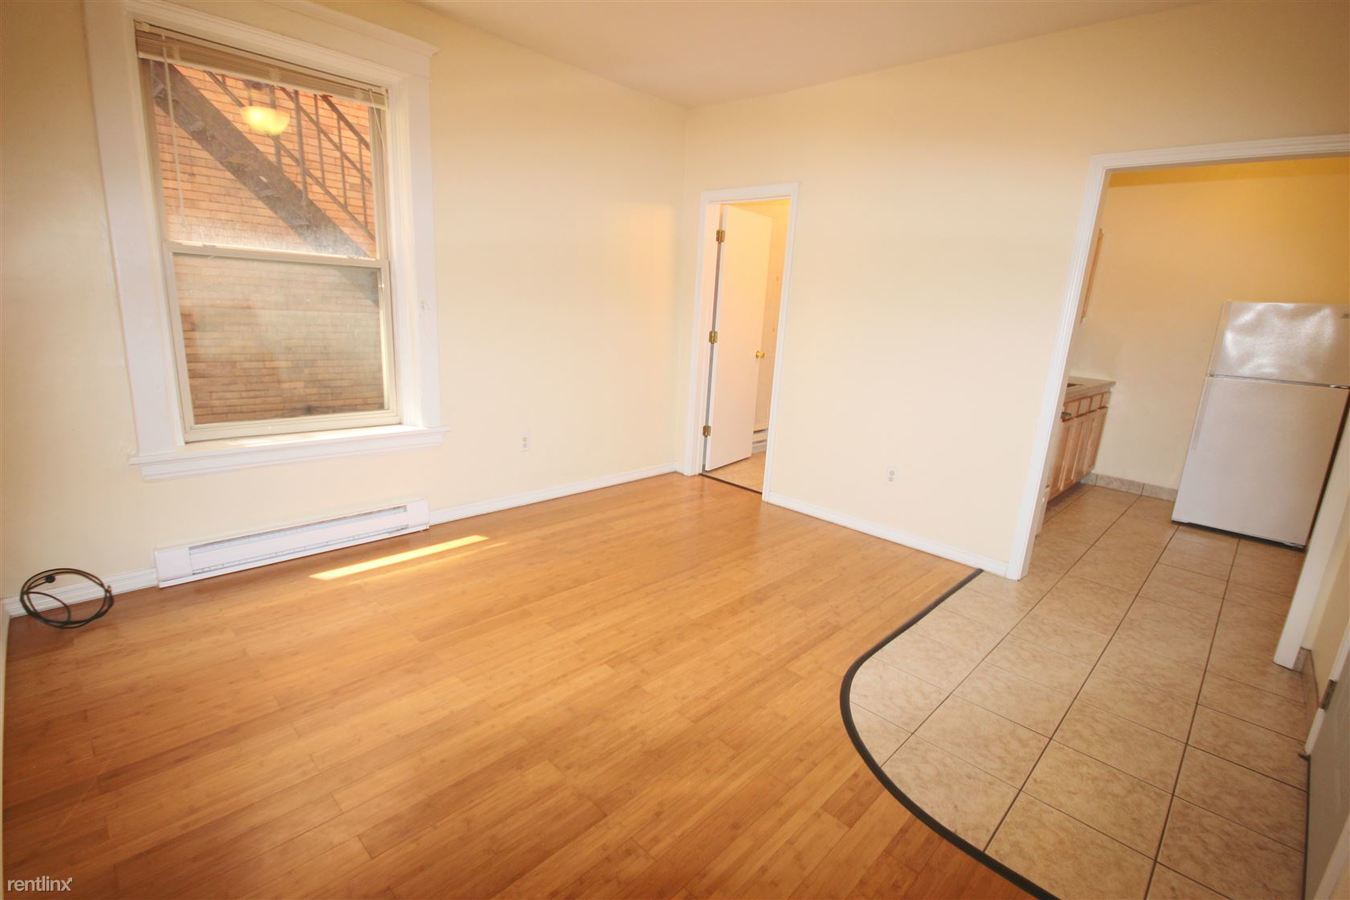 1 Bedroom 1 Bathroom House for rent at 326 Melwood Ave in Pittsburgh, PA